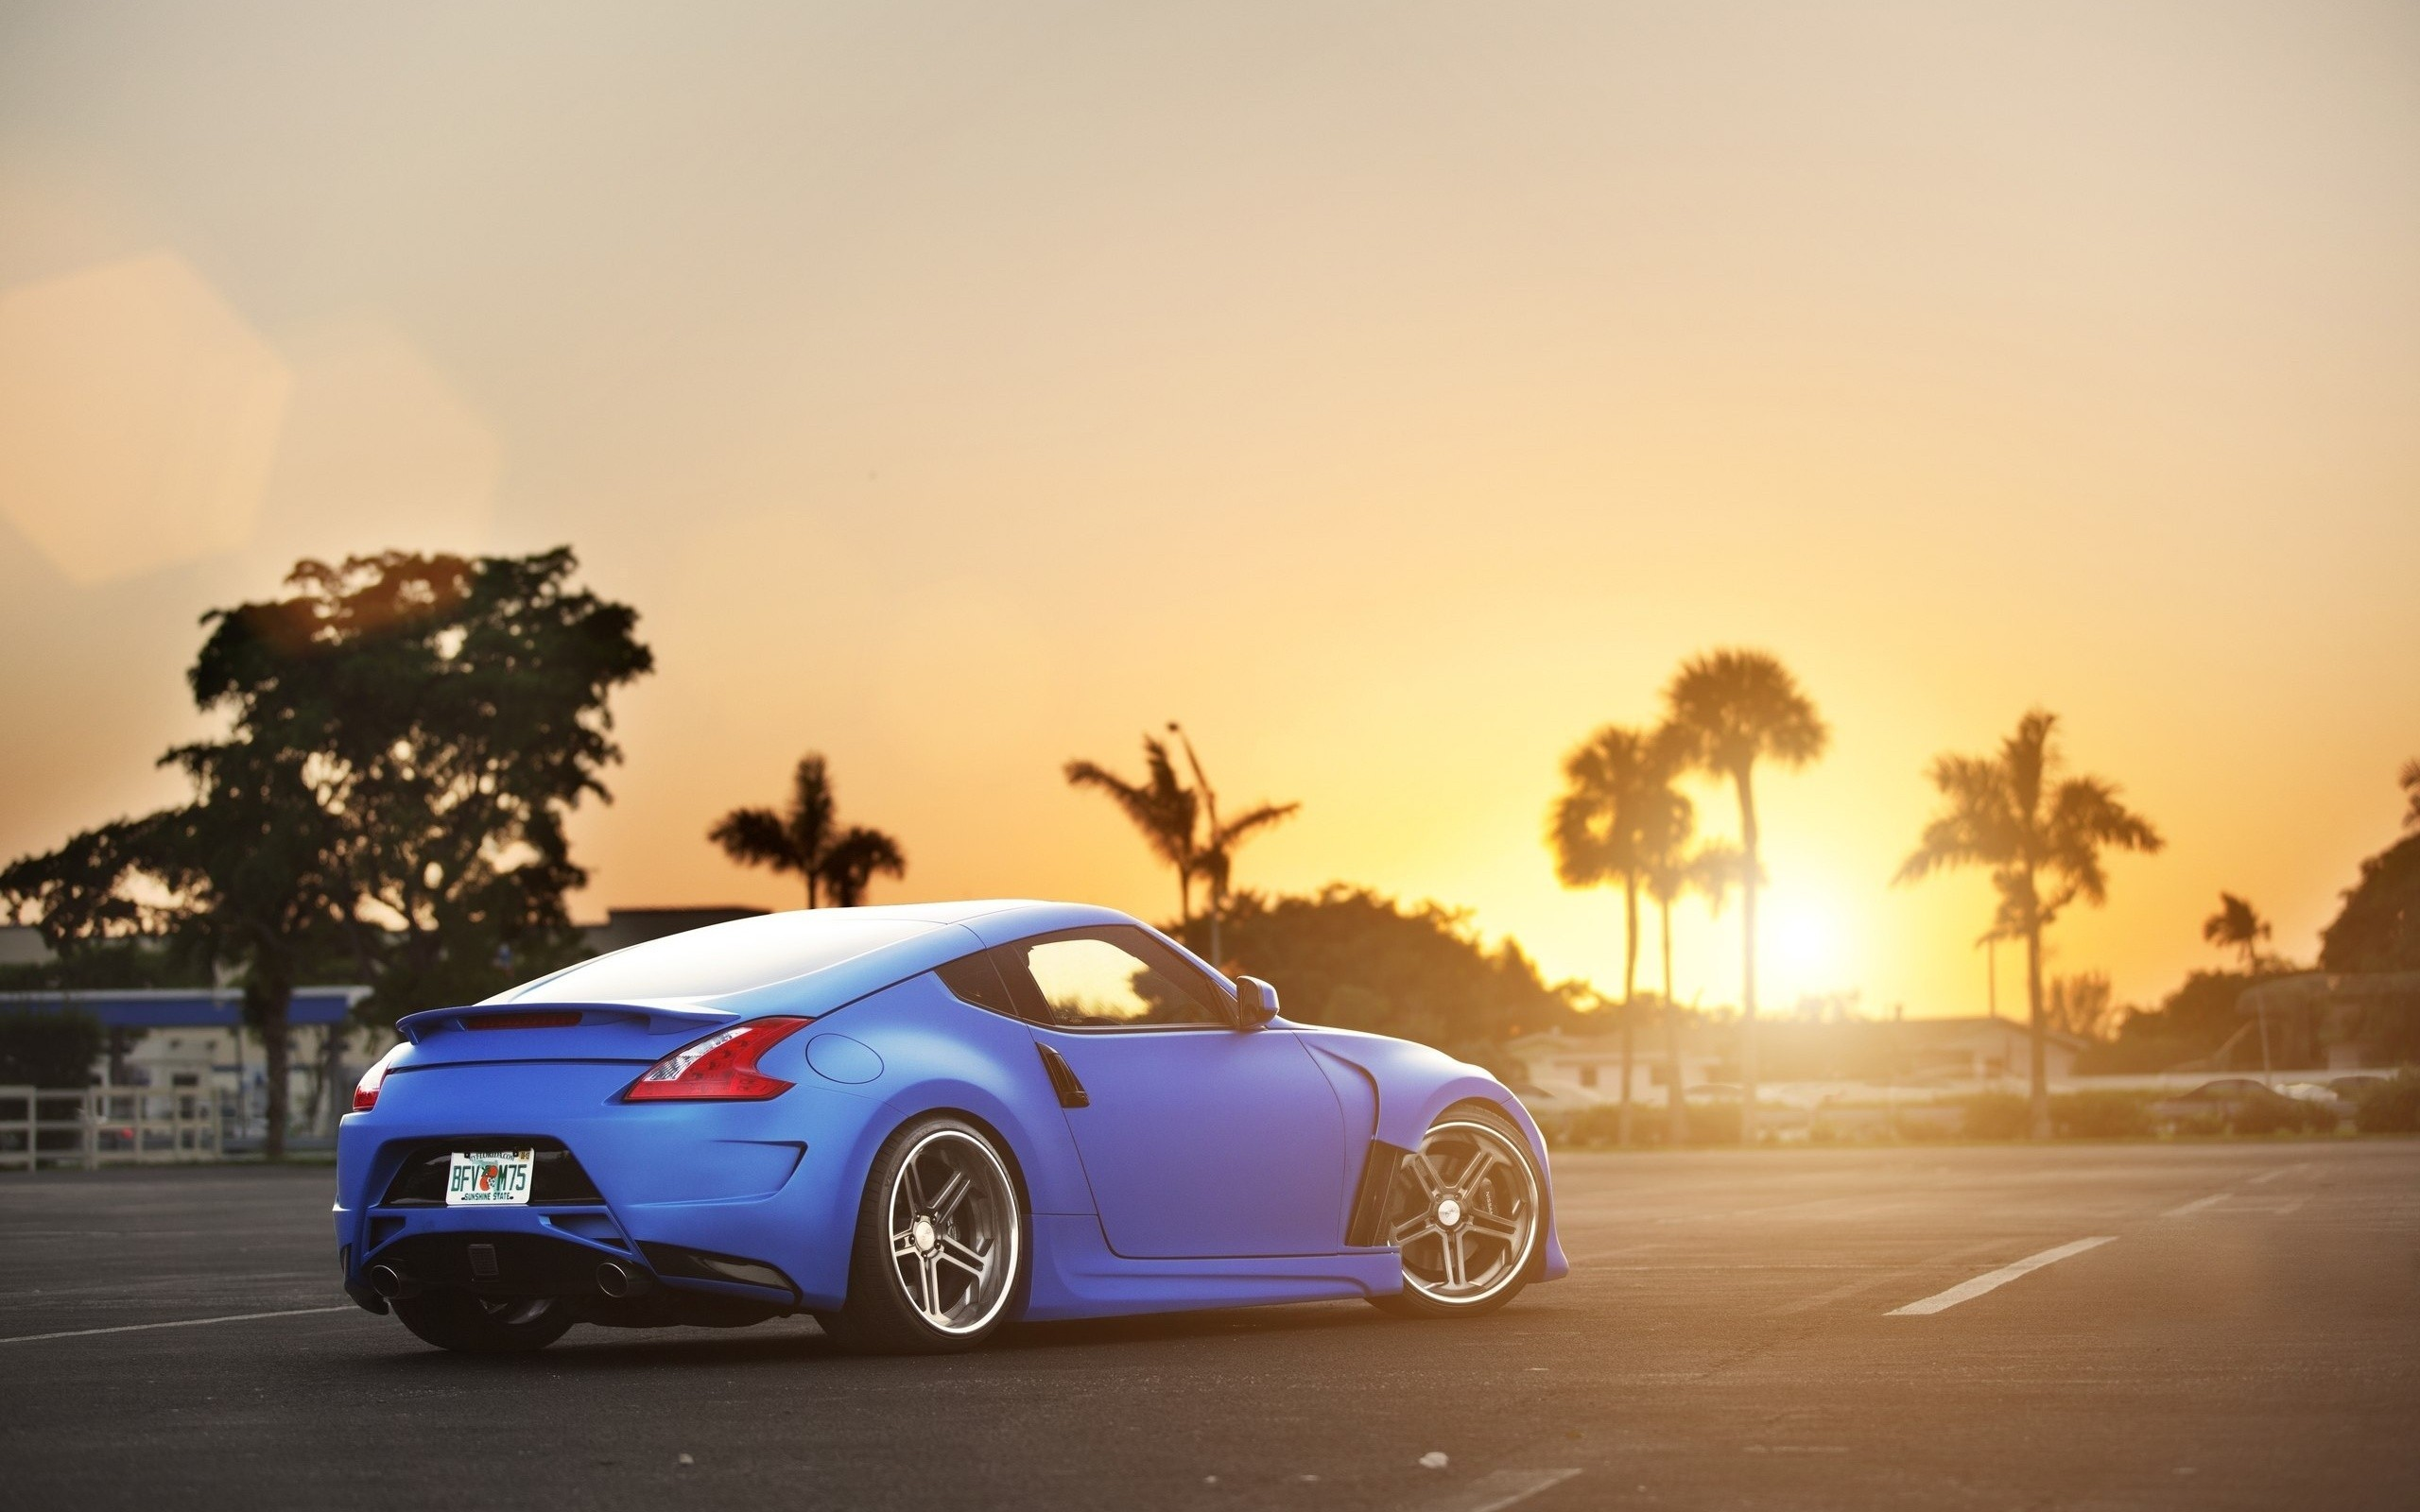 Nissan 370z Wallpaper Desktop - Wickedsa com